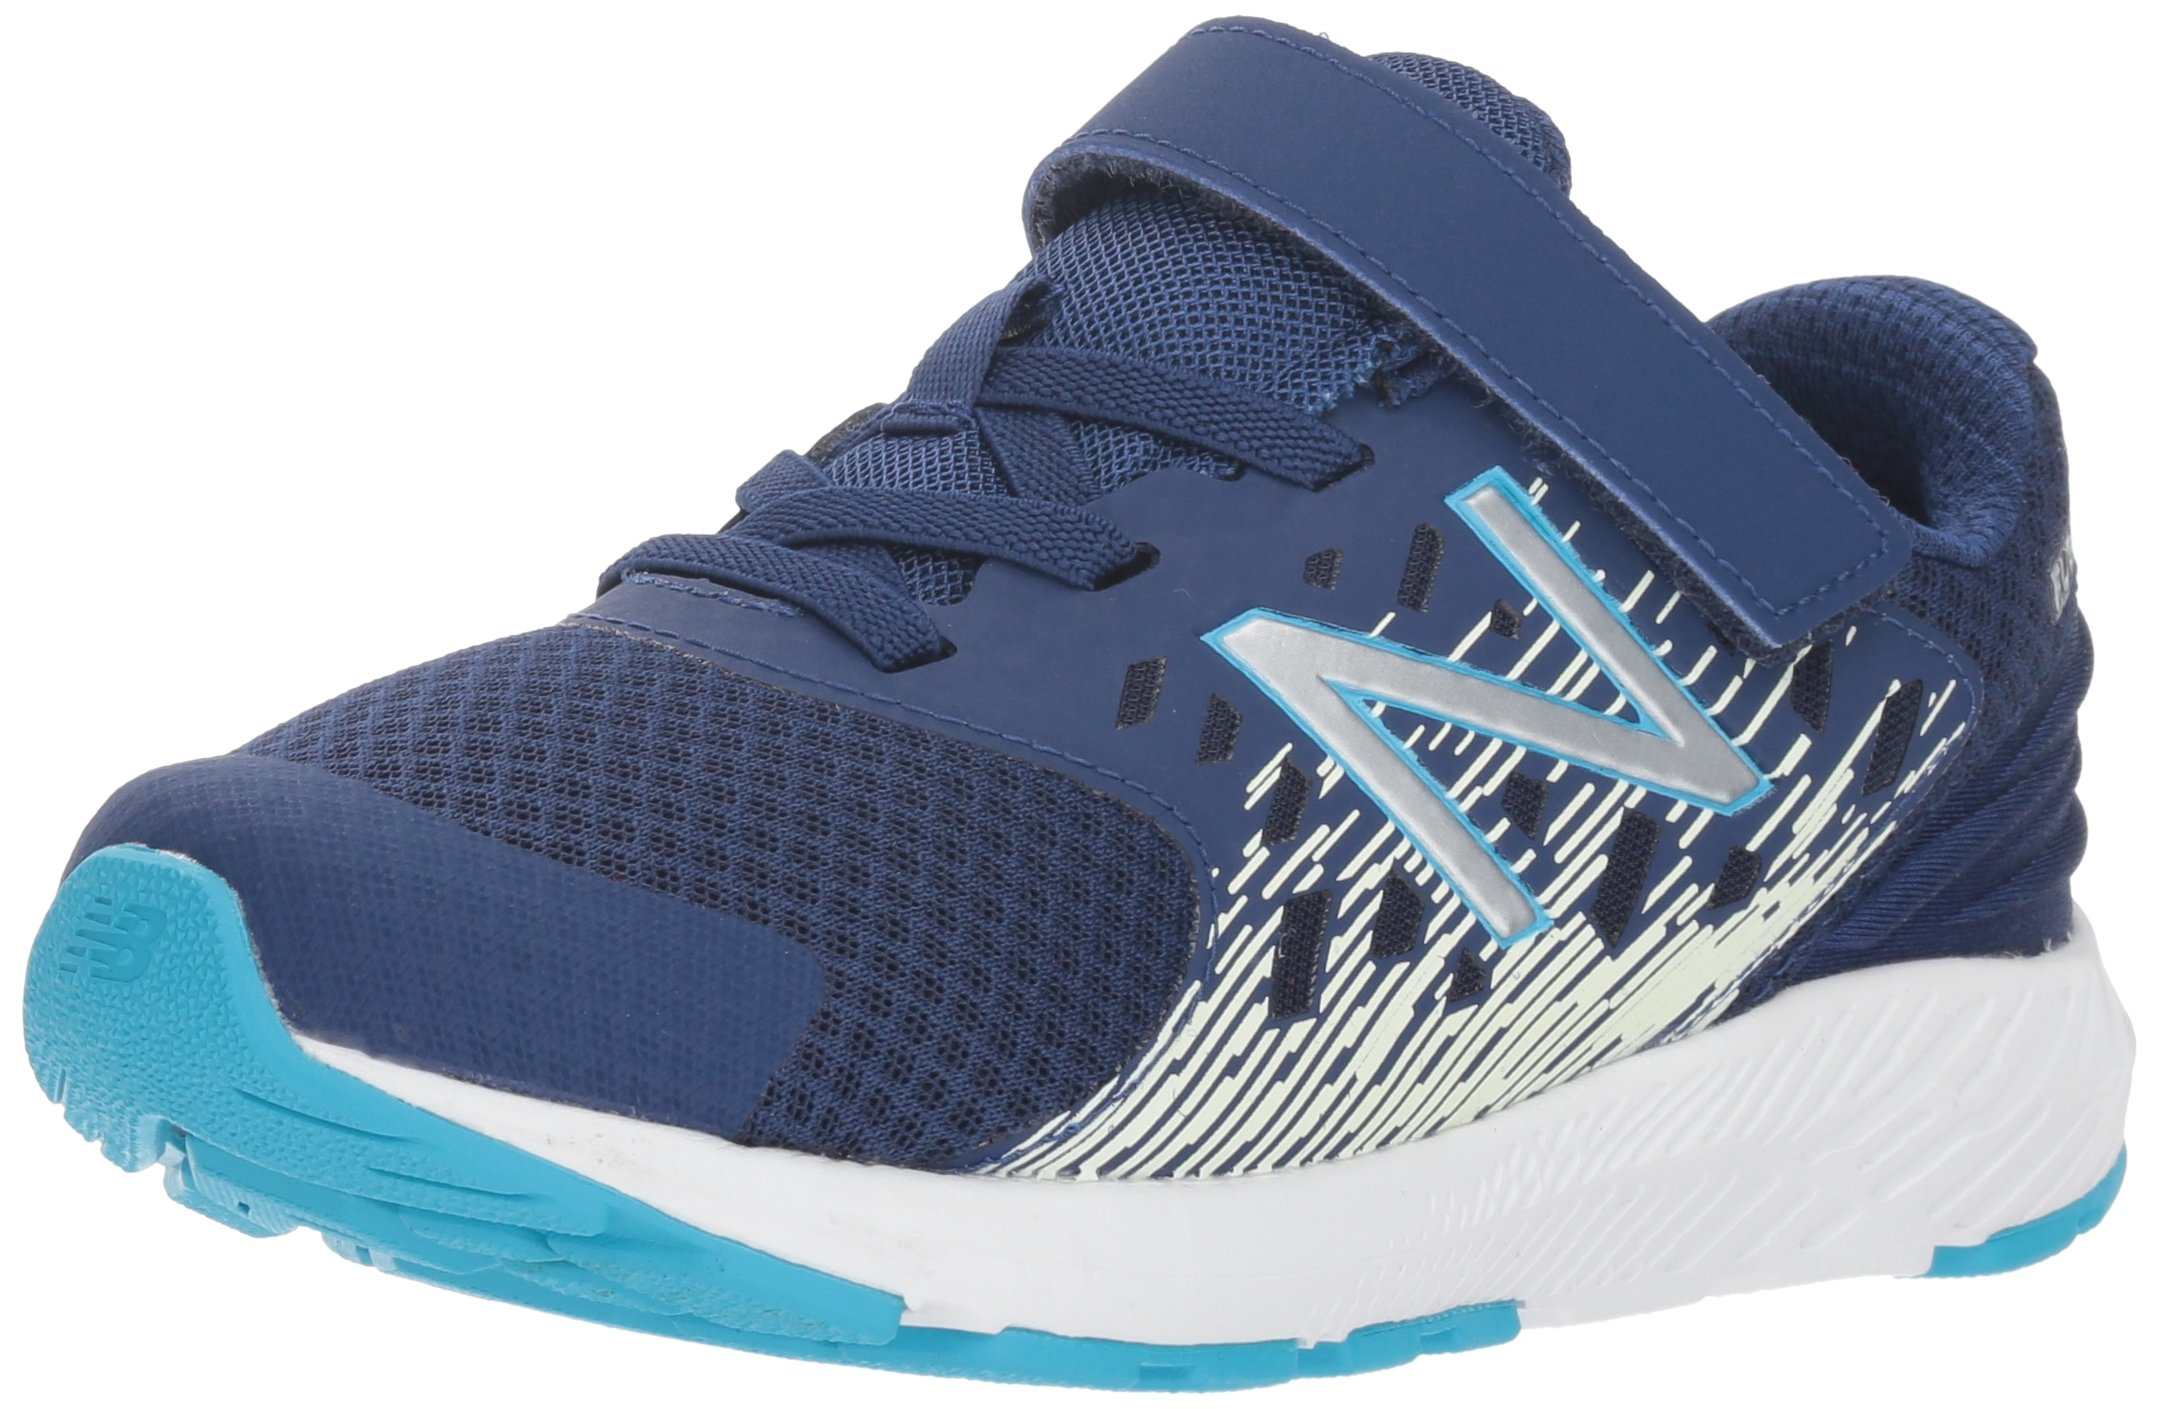 New Balance Boys' Urge V2 FuelCore Running Shoe, Techtonic Blue, 7.5 M US Toddler